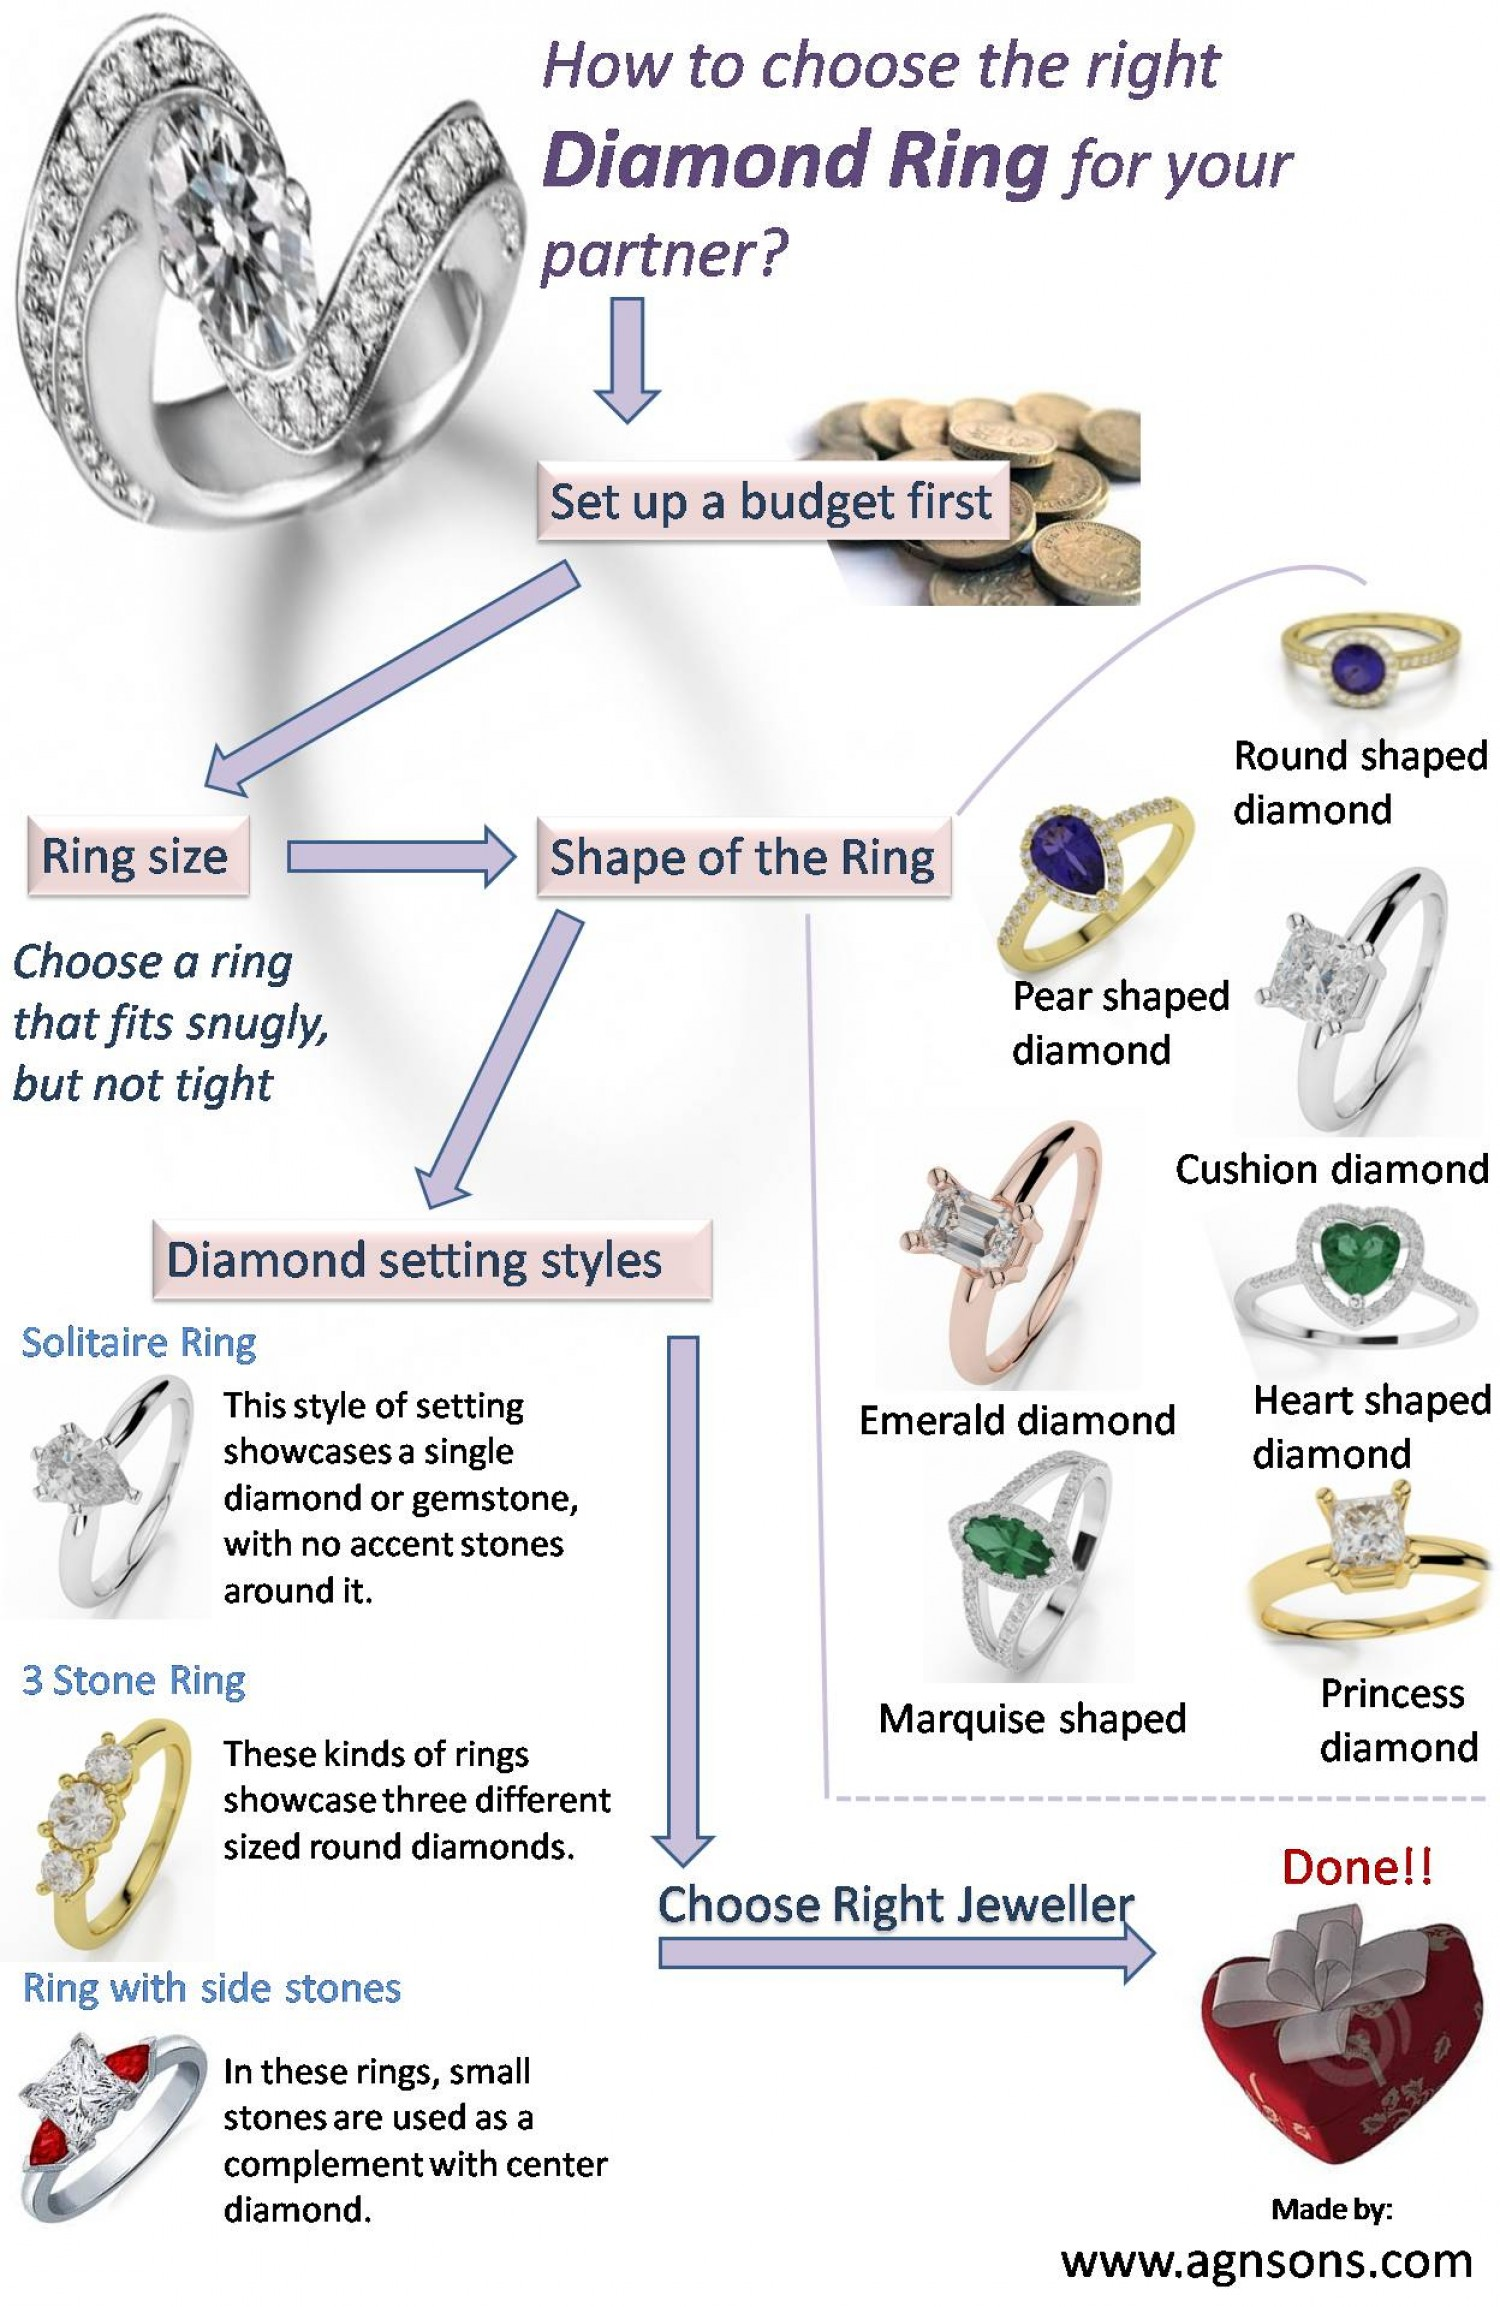 How to choose the right diamond ring for your partner?